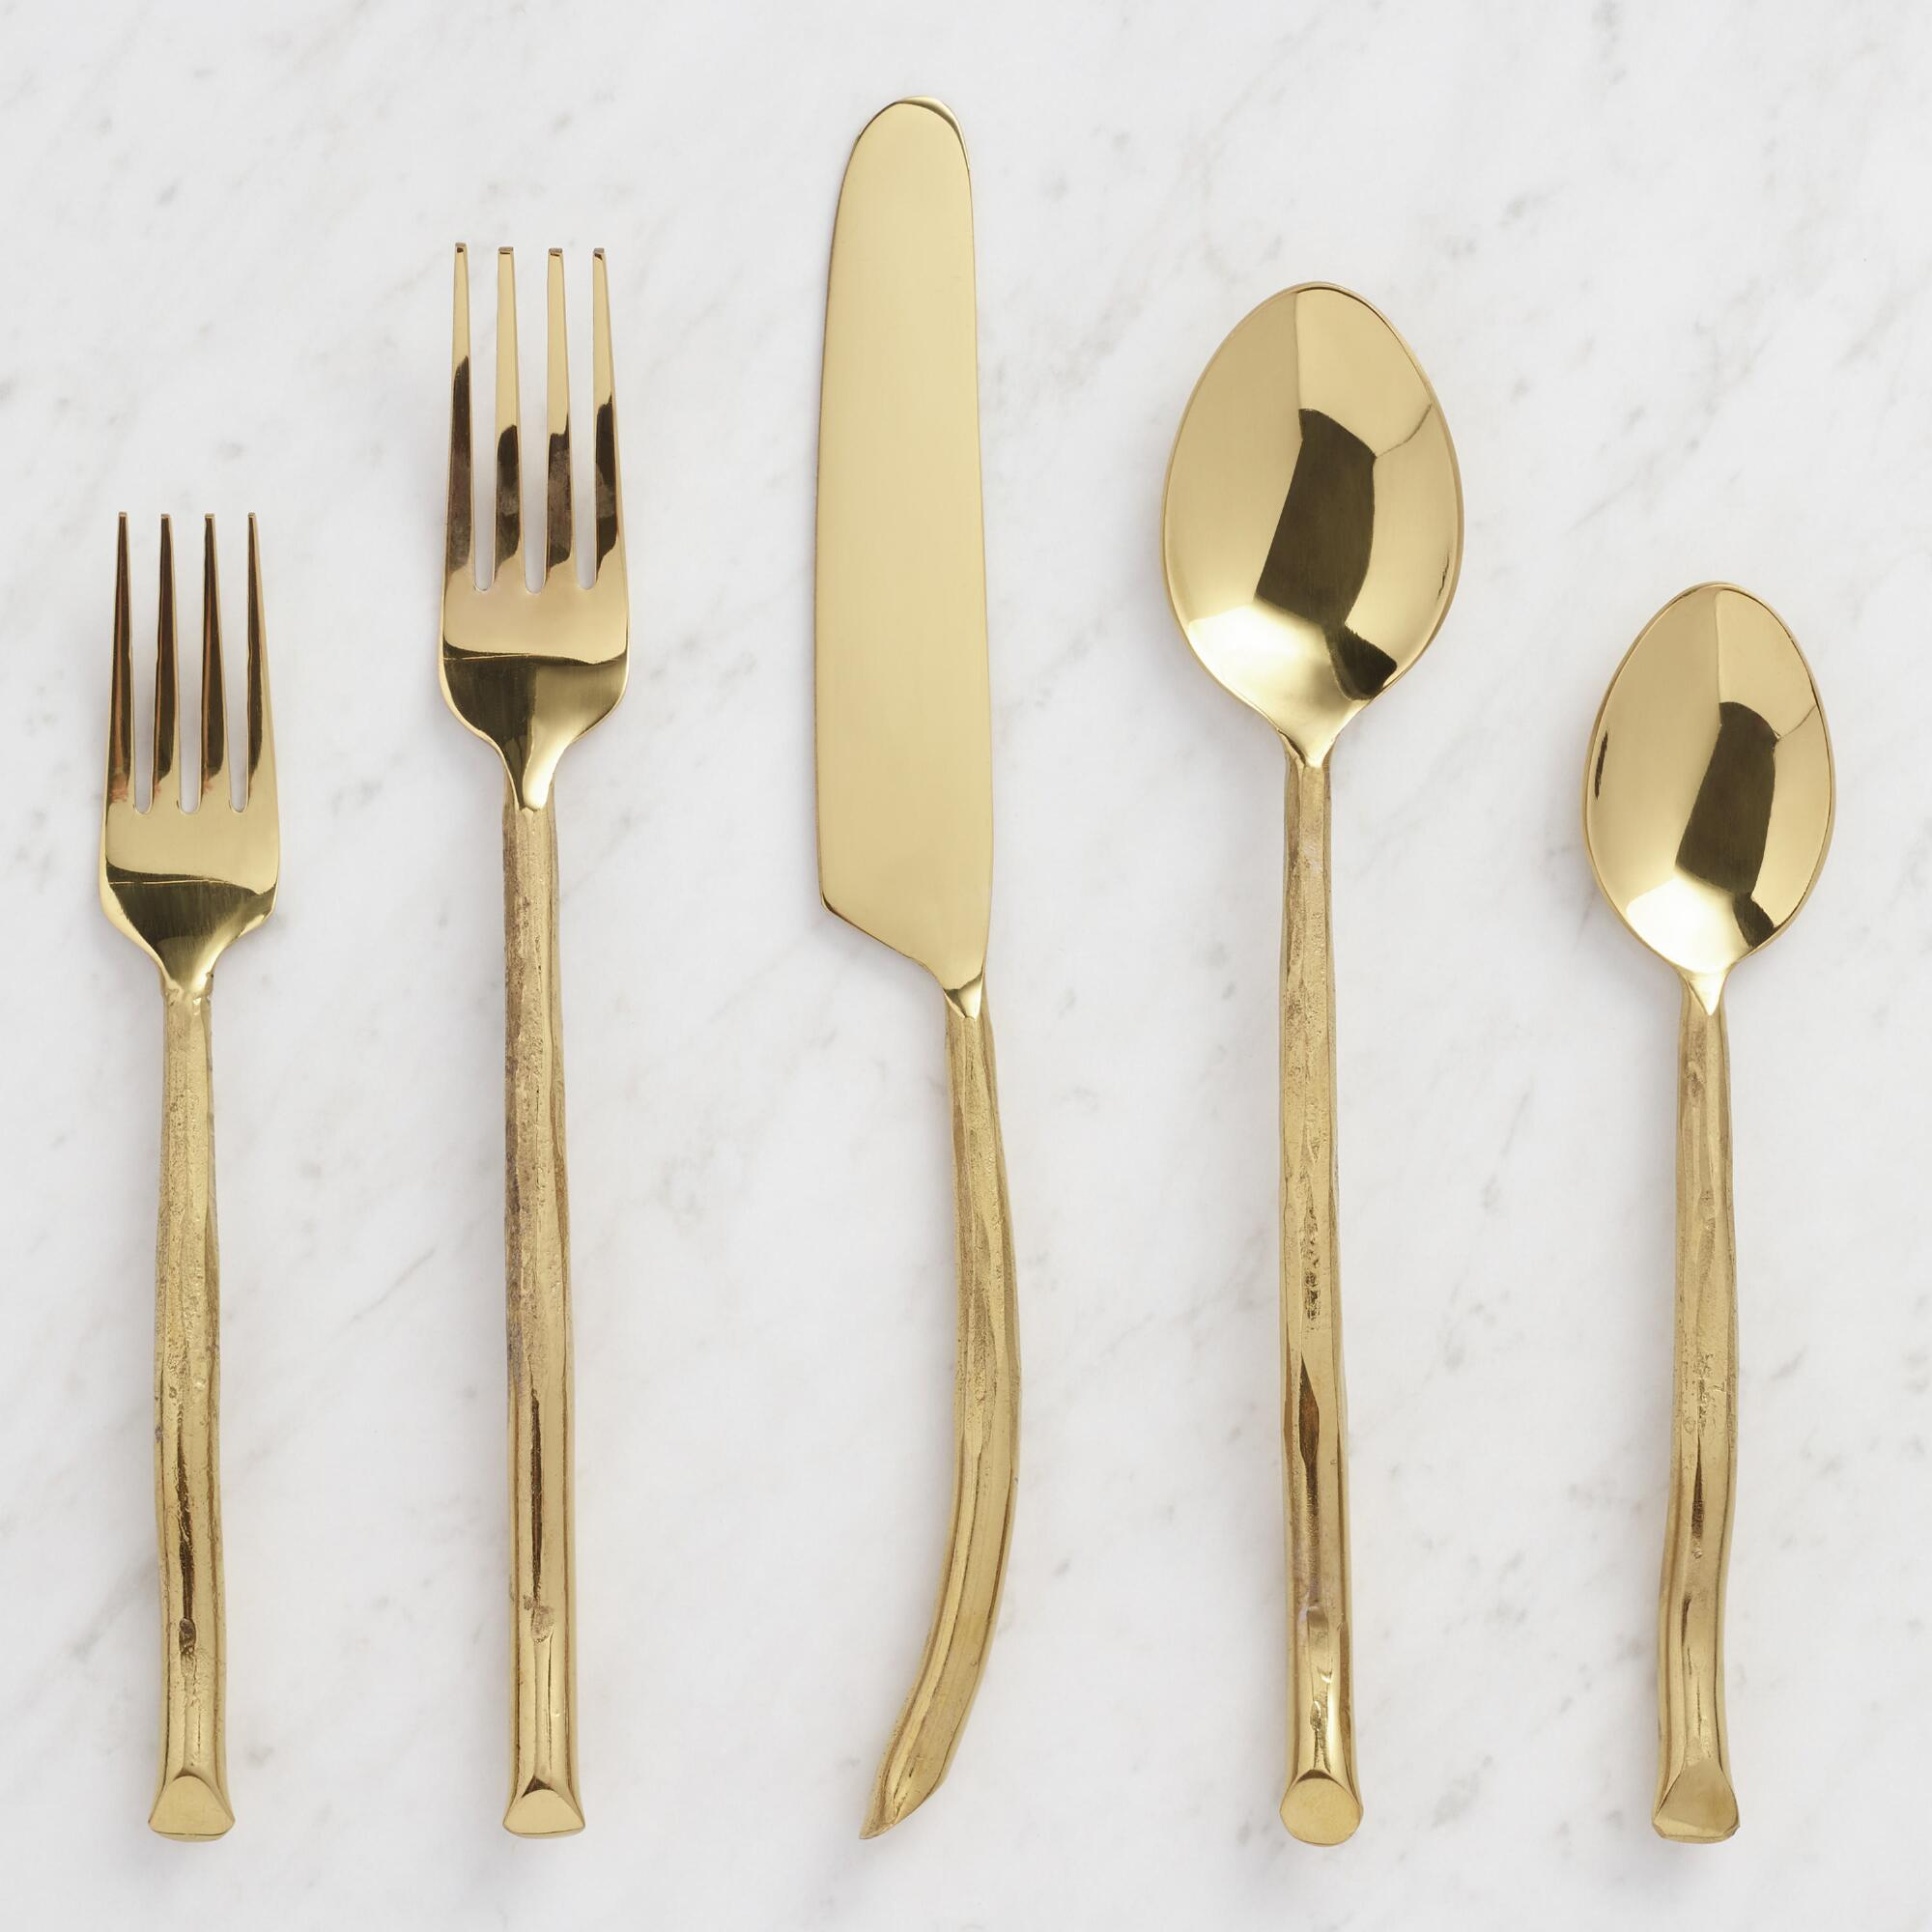 Gold Twig Flatware Collection by World Market